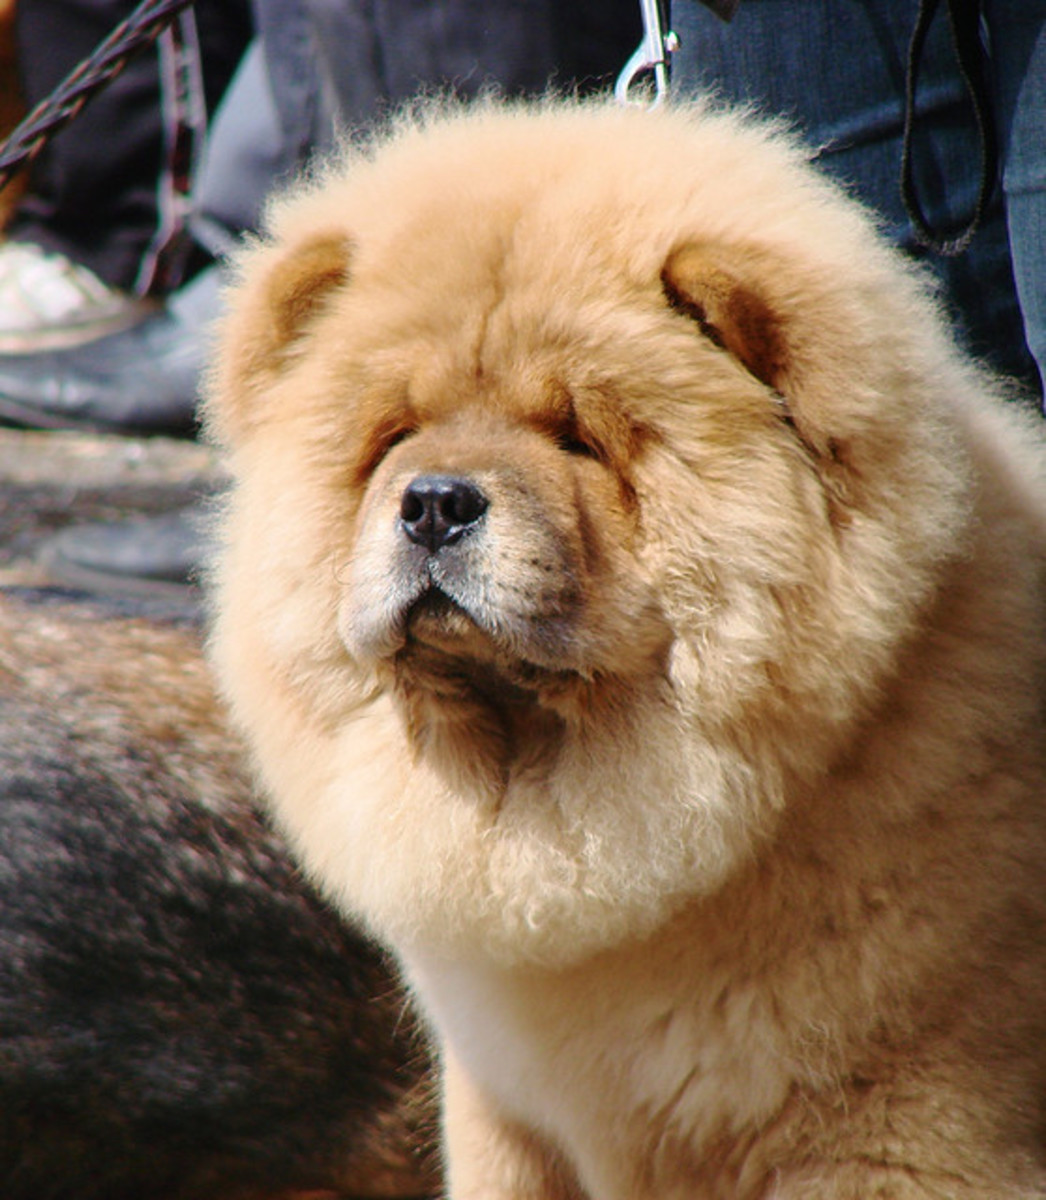 Chow chows are known to be protective of their homes and families.